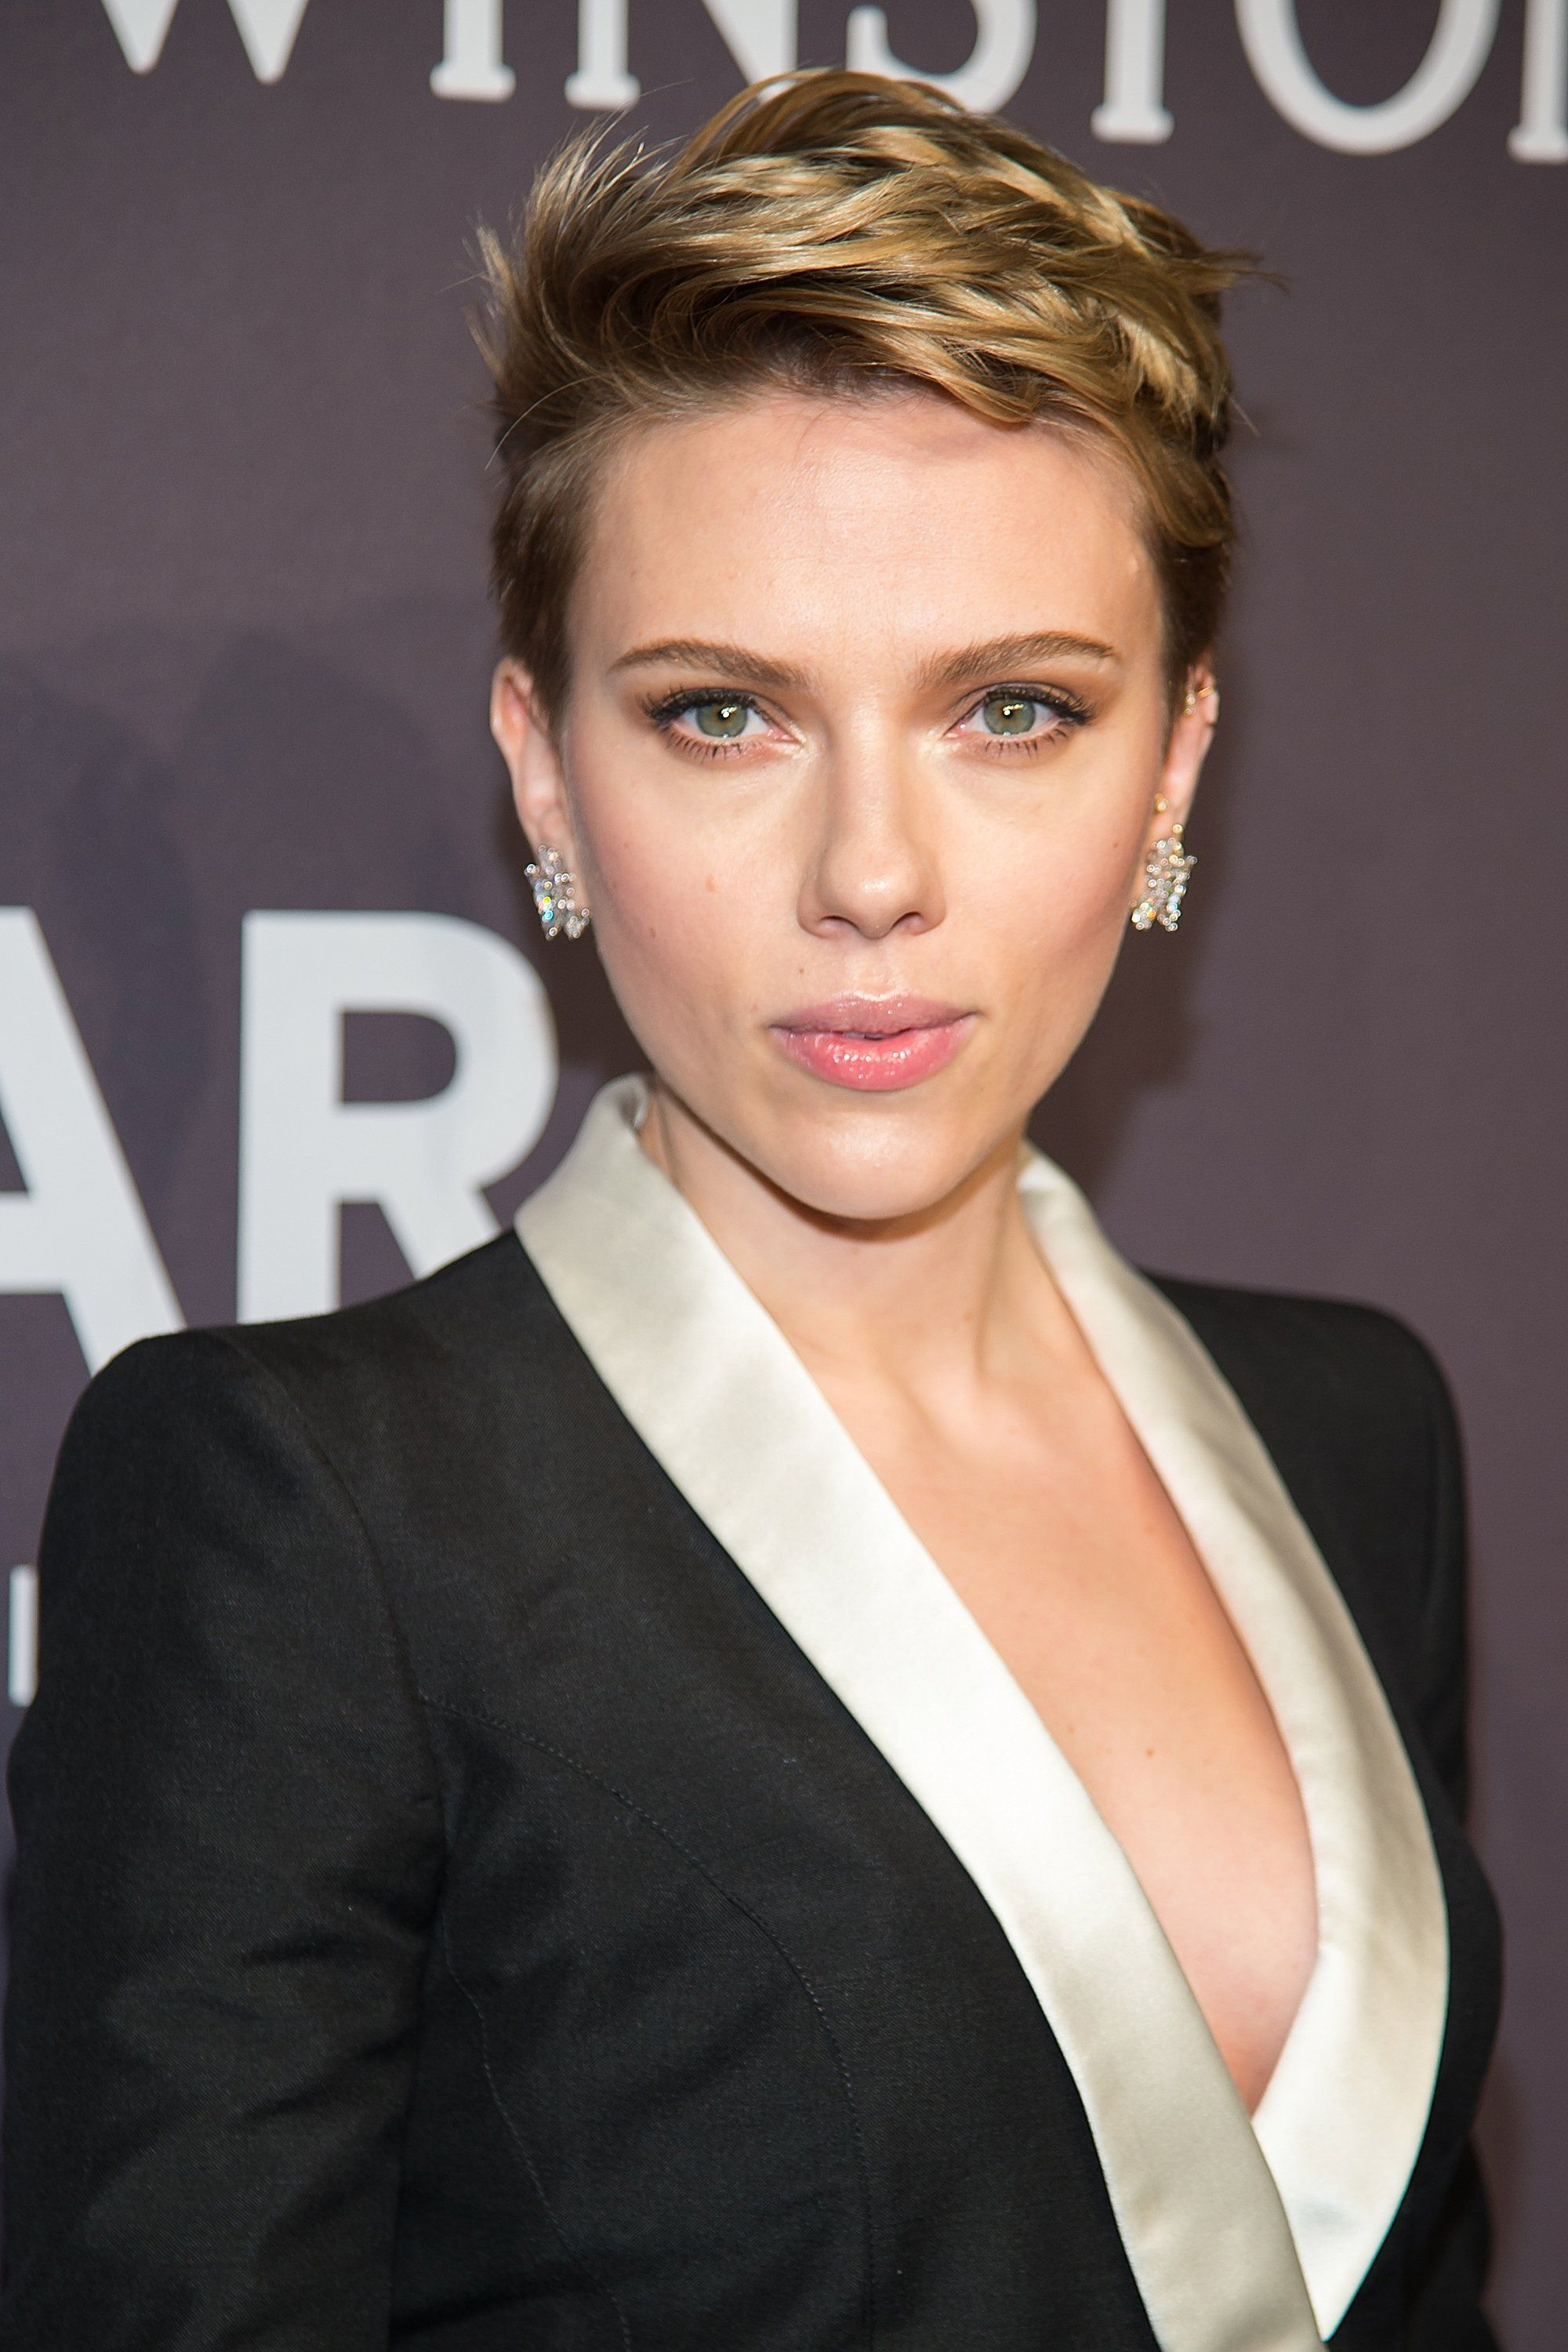 Scarlett strikes a Marilyn, makes me want redlipstick images